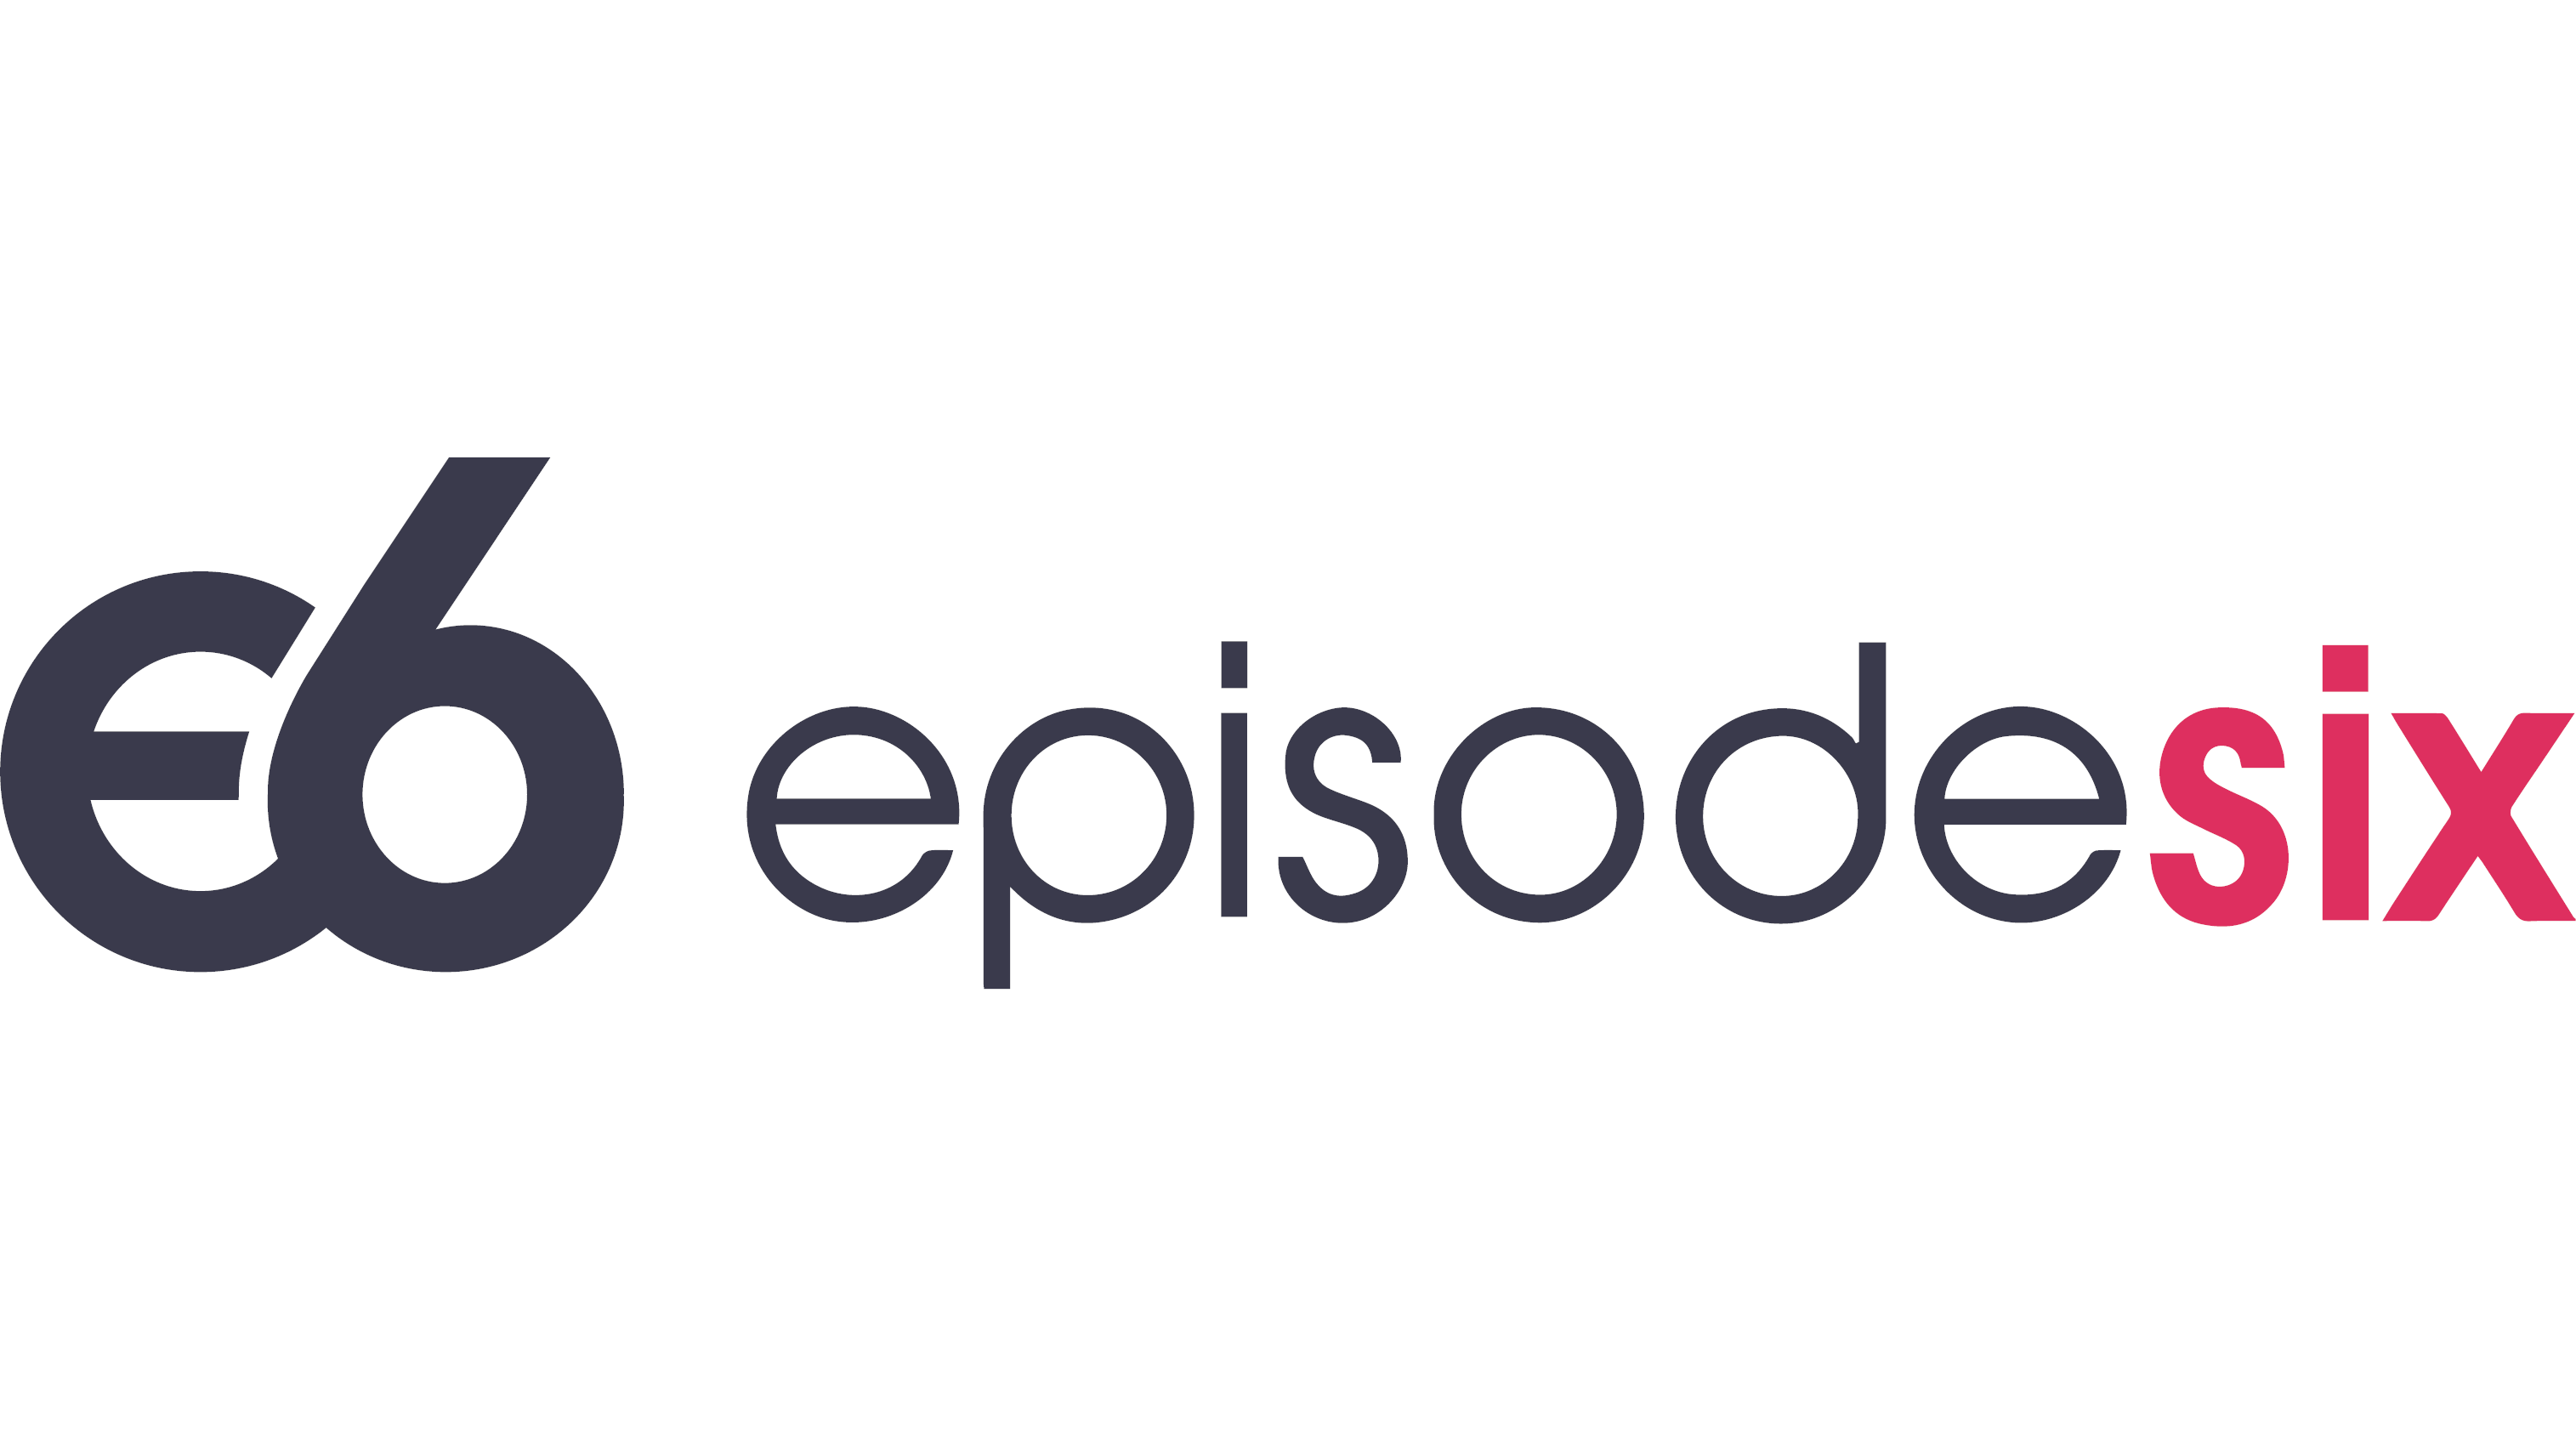 Episode Six Announces Additional $30 Million in Funding